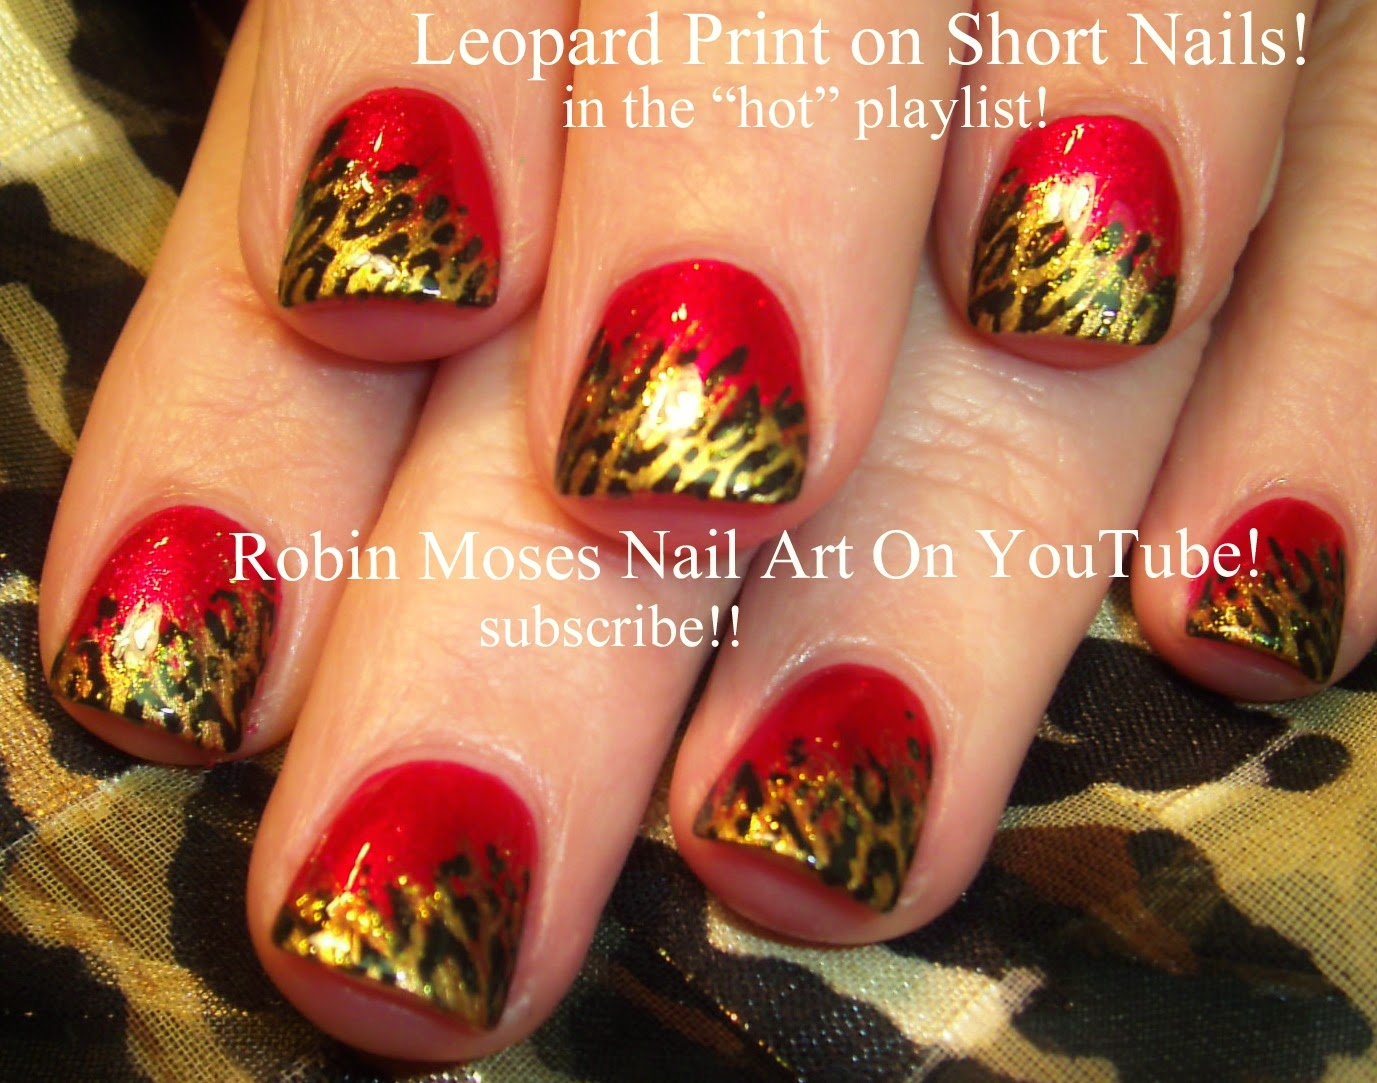 Robin moses nail art short nail art nail art fish nail art nail art tutorials diy cute nails easy cute nail art tutorial designs for beginners and up prinsesfo Images